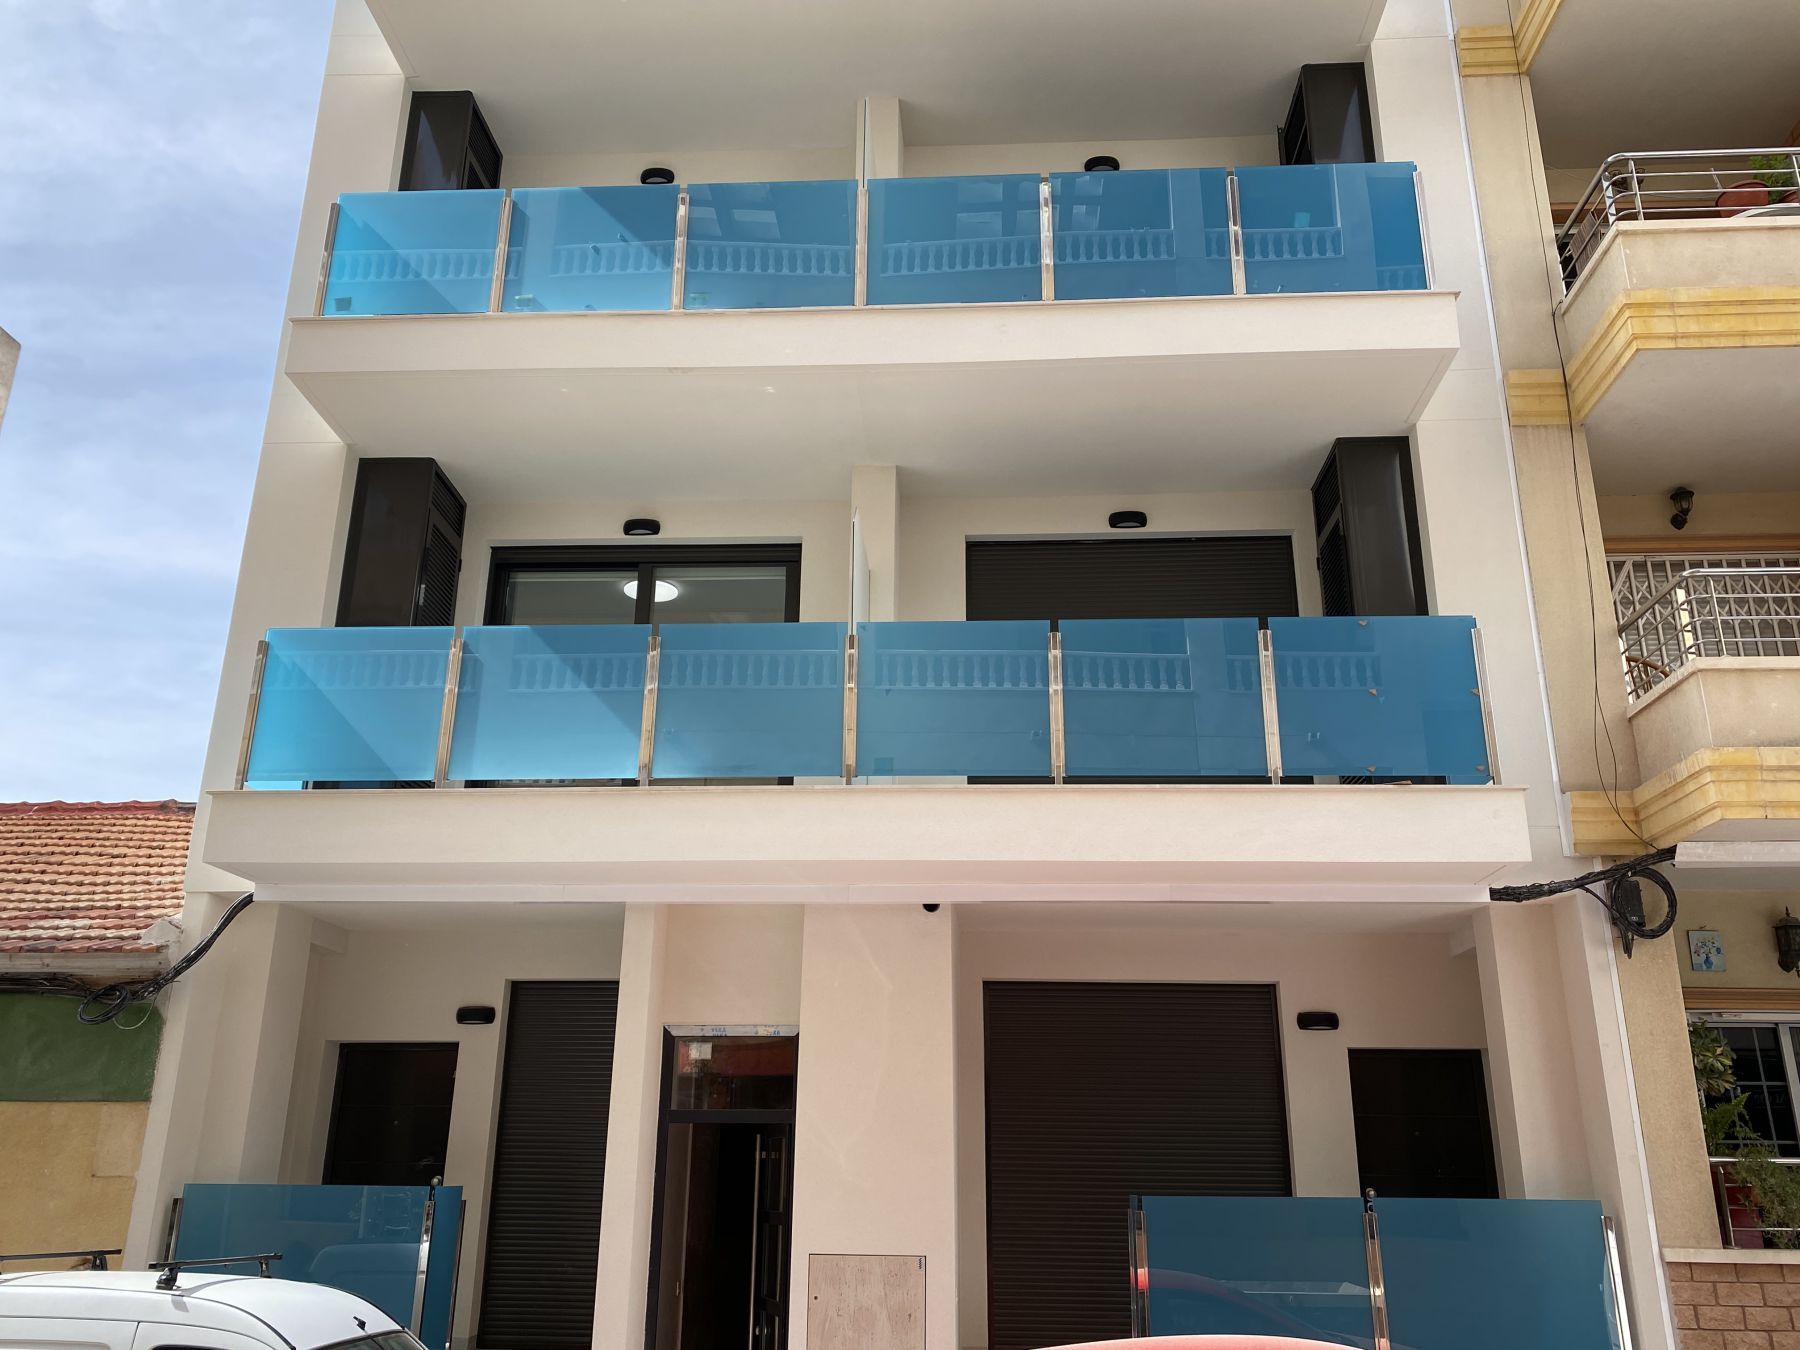 3 Bedrooms New Buid Apartments For Sale in Playa del Cura - torrevieja